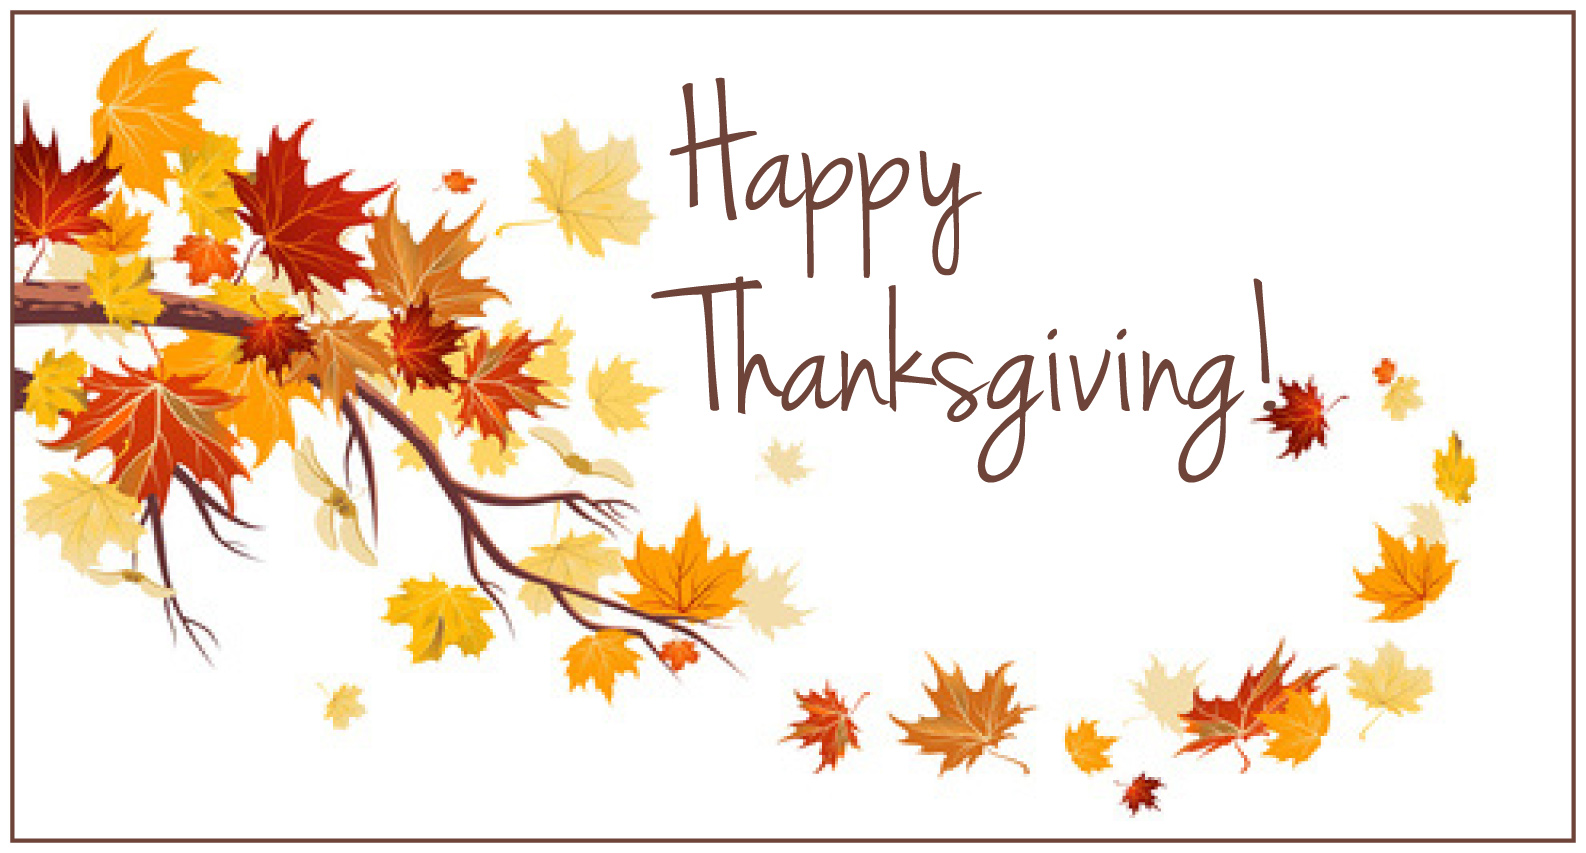 happy thanksgiving from pna